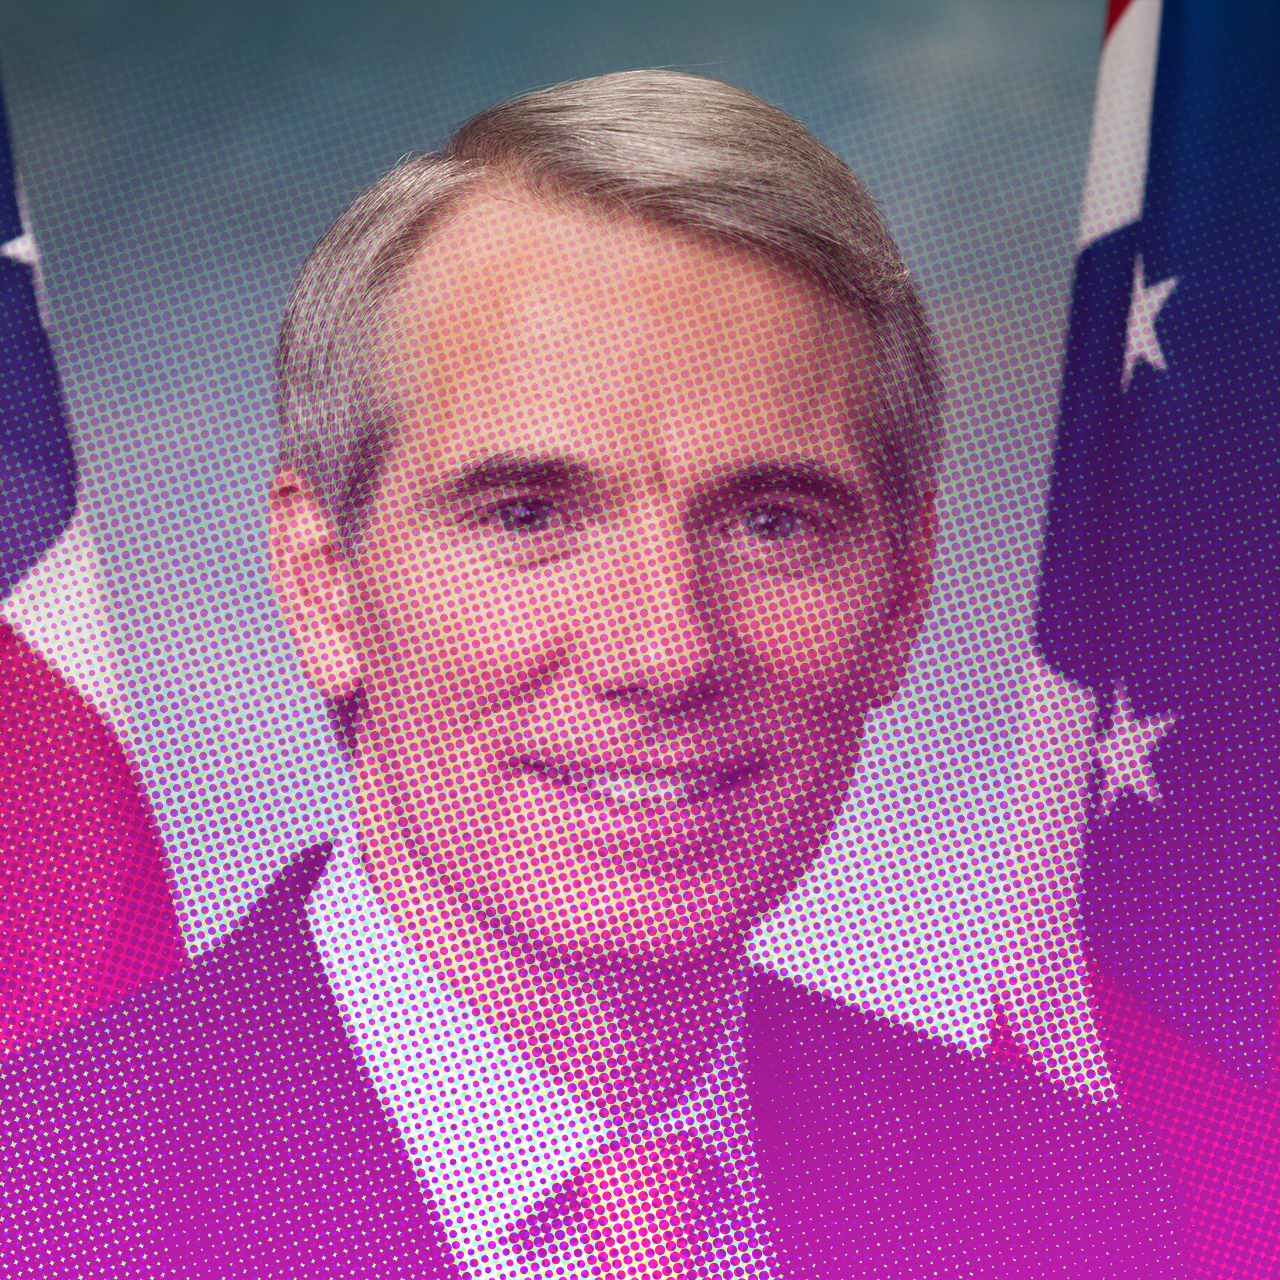 Rob Portman (R-OH)$3,061,941* - Tweet a box